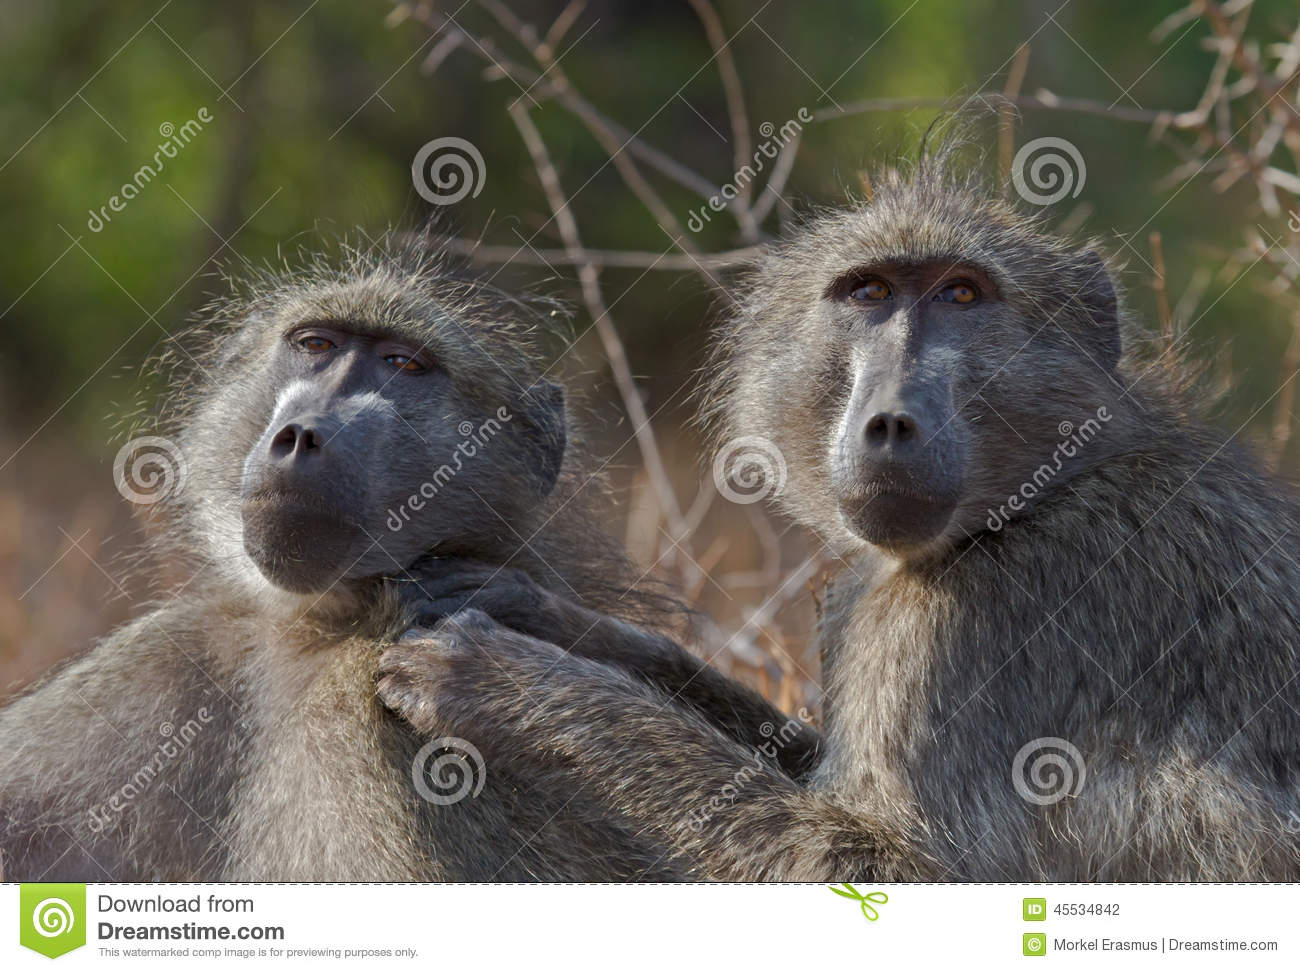 Chacma baboons engaged in mutual social grooming